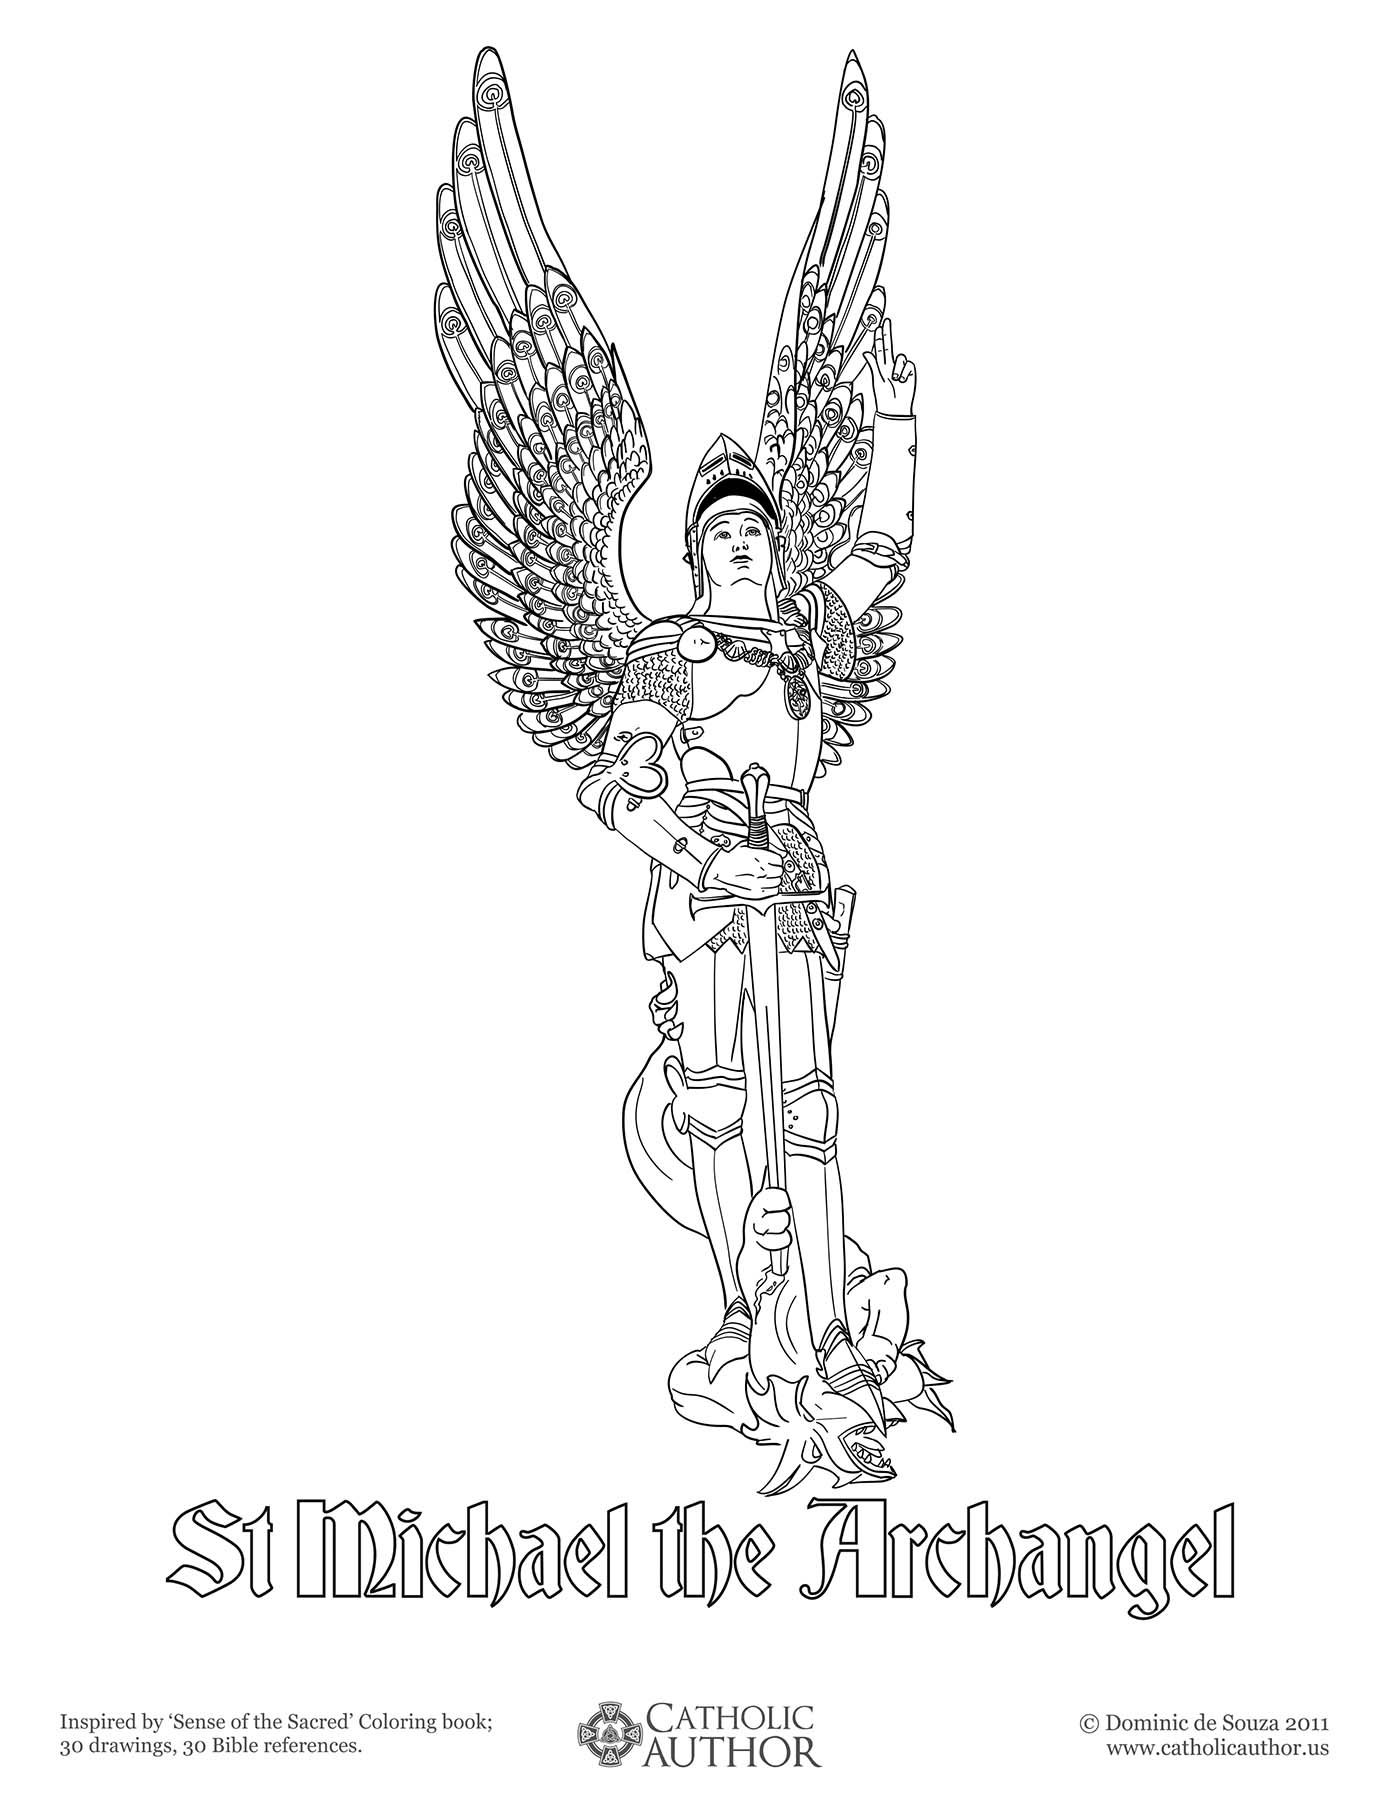 st michael the archangel free hand drawn catholic coloring pictures